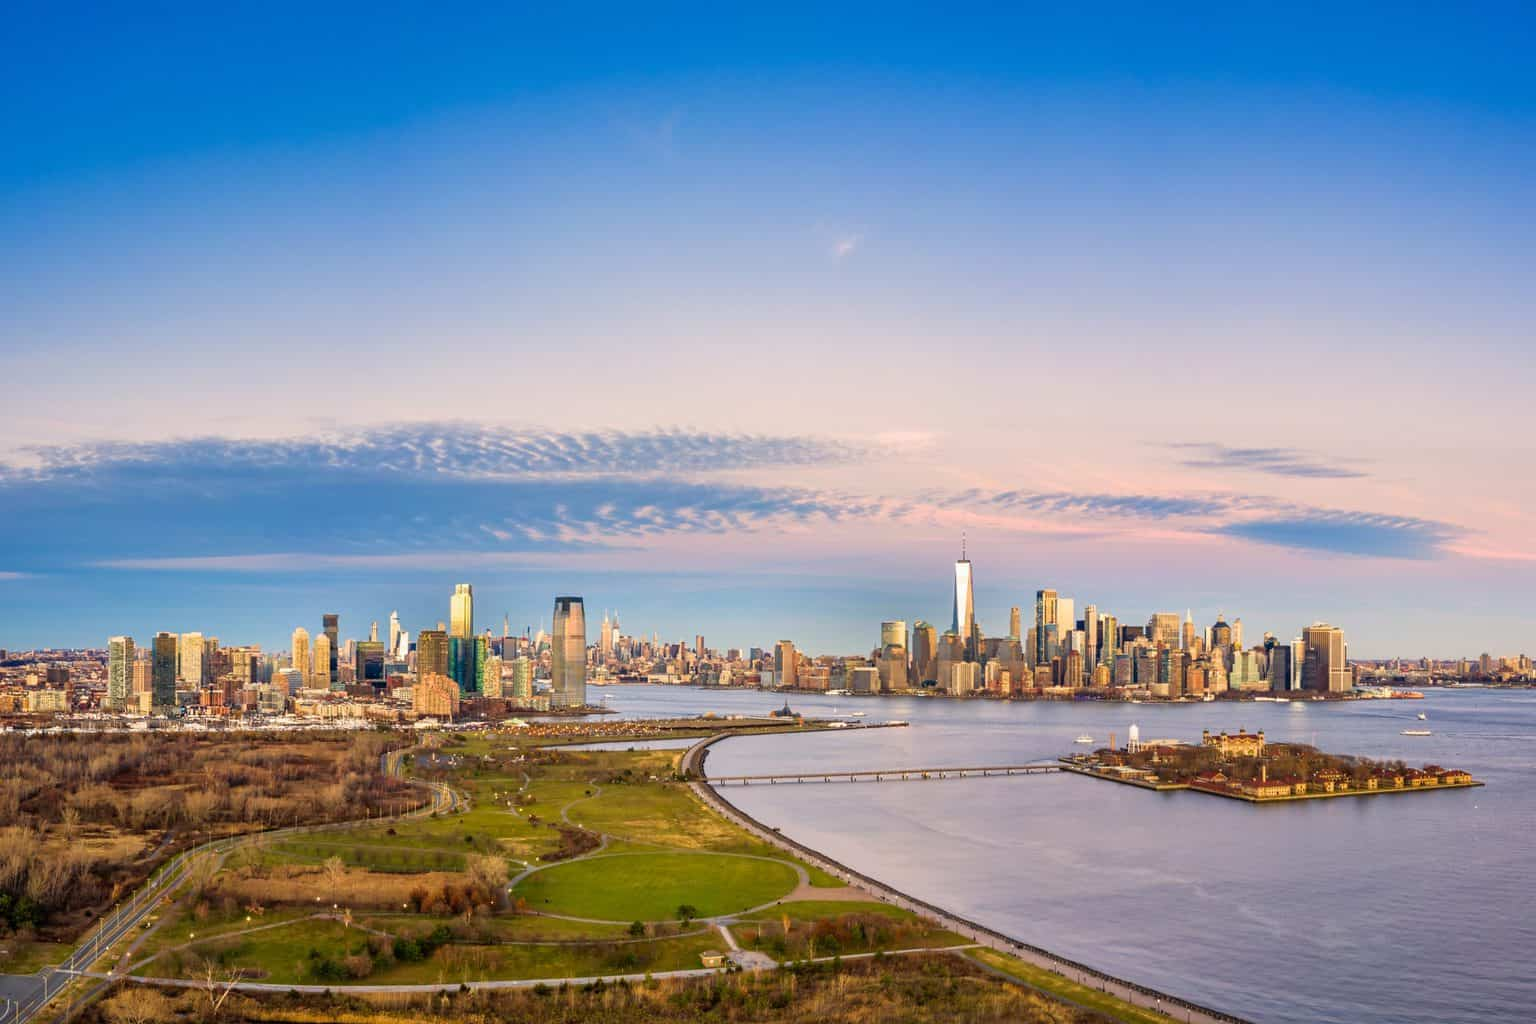 An aerial view of Liberty State Park near Jersey City, New Jersey.